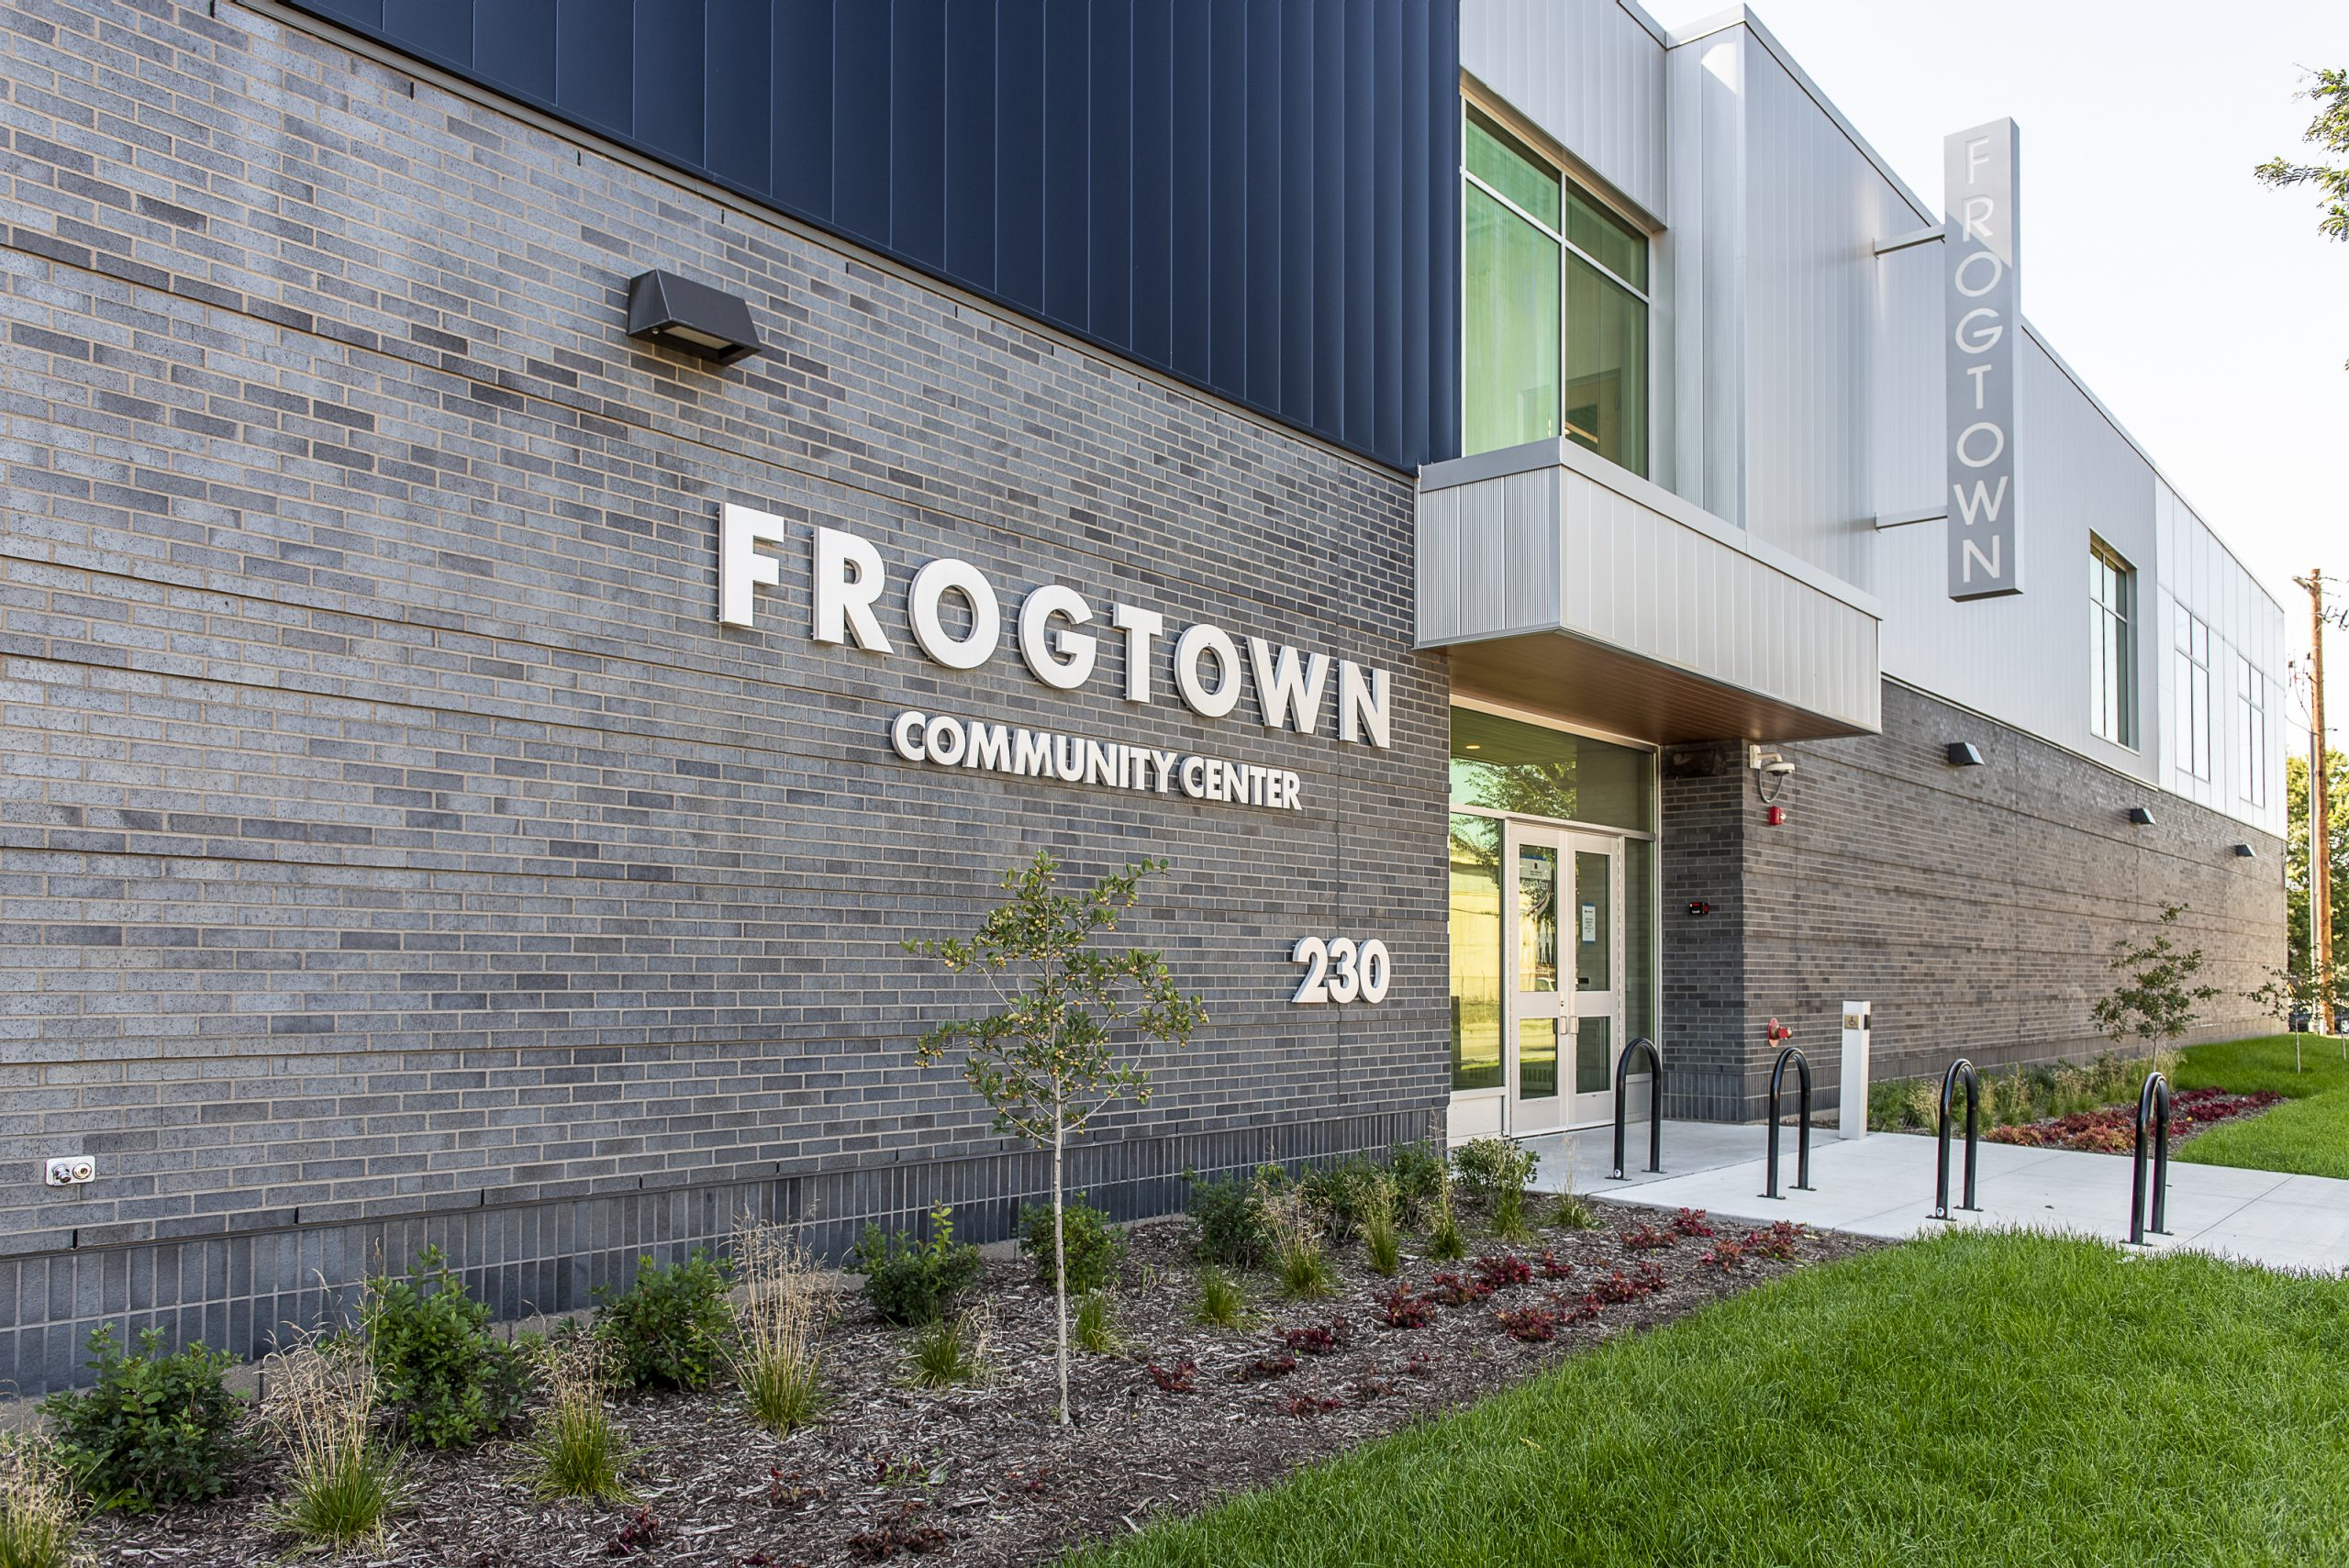 Frogtown Community Center